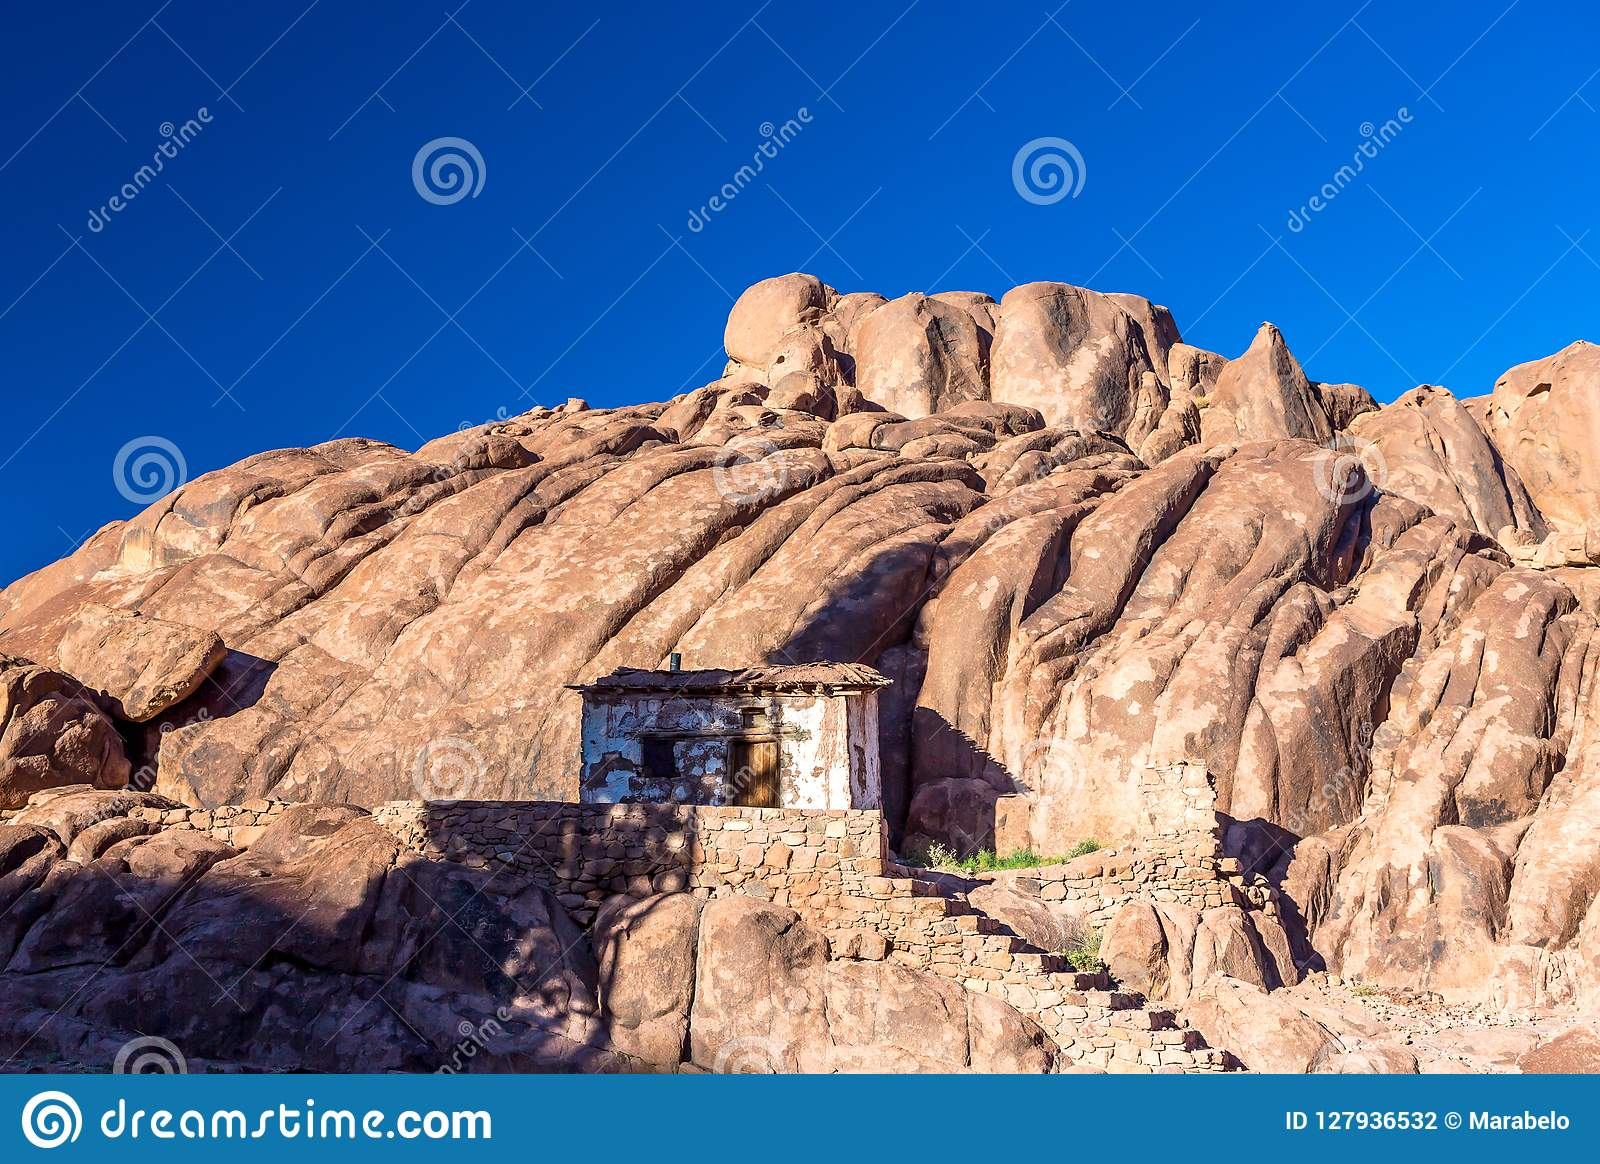 Mount Sinai, Mount Moses In Egypt  Stock Photo - Image of